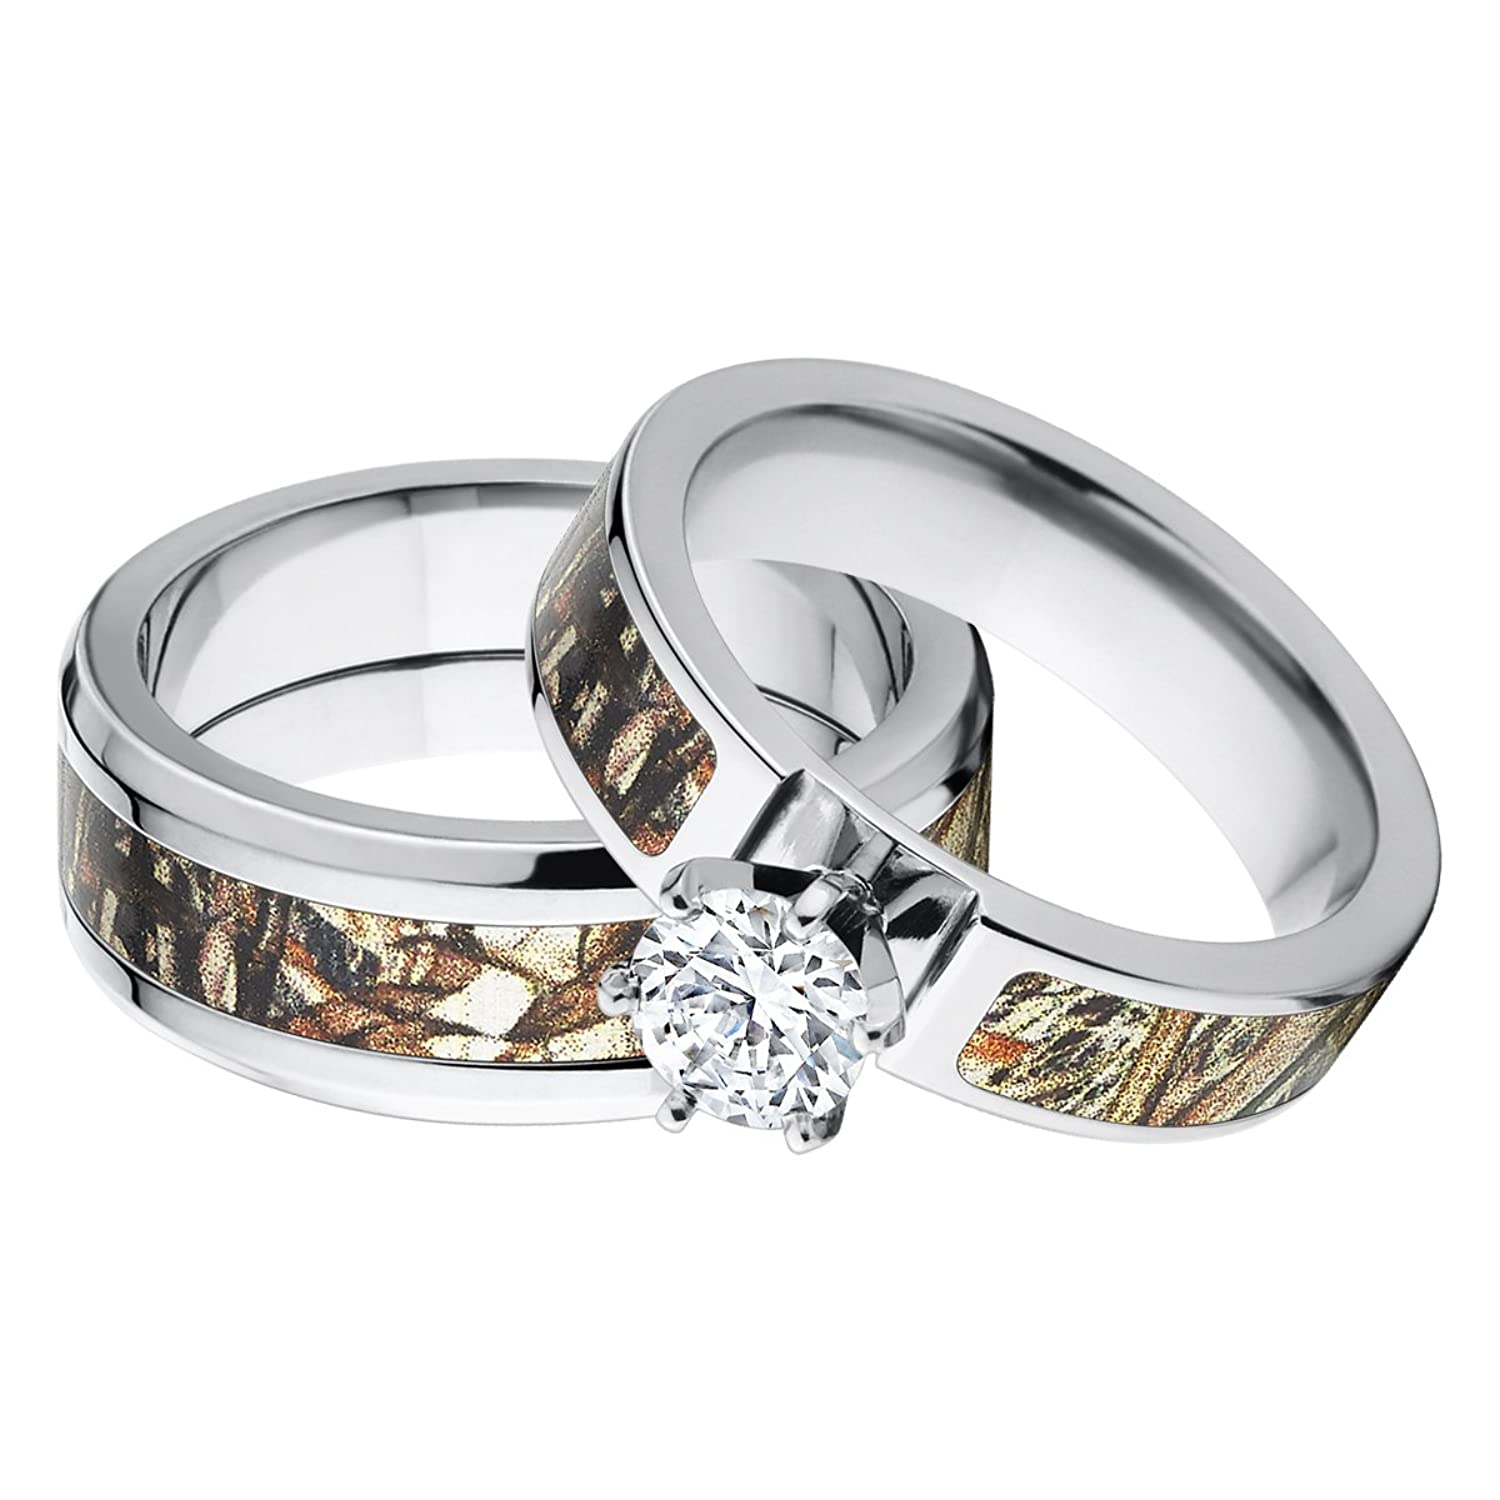 mossy oak wedding ring camouflage wedding ring sets Amazon Com His And Her S Matching Mossy Oak Duck Blind Camo Wedding Ring Set Jewelry